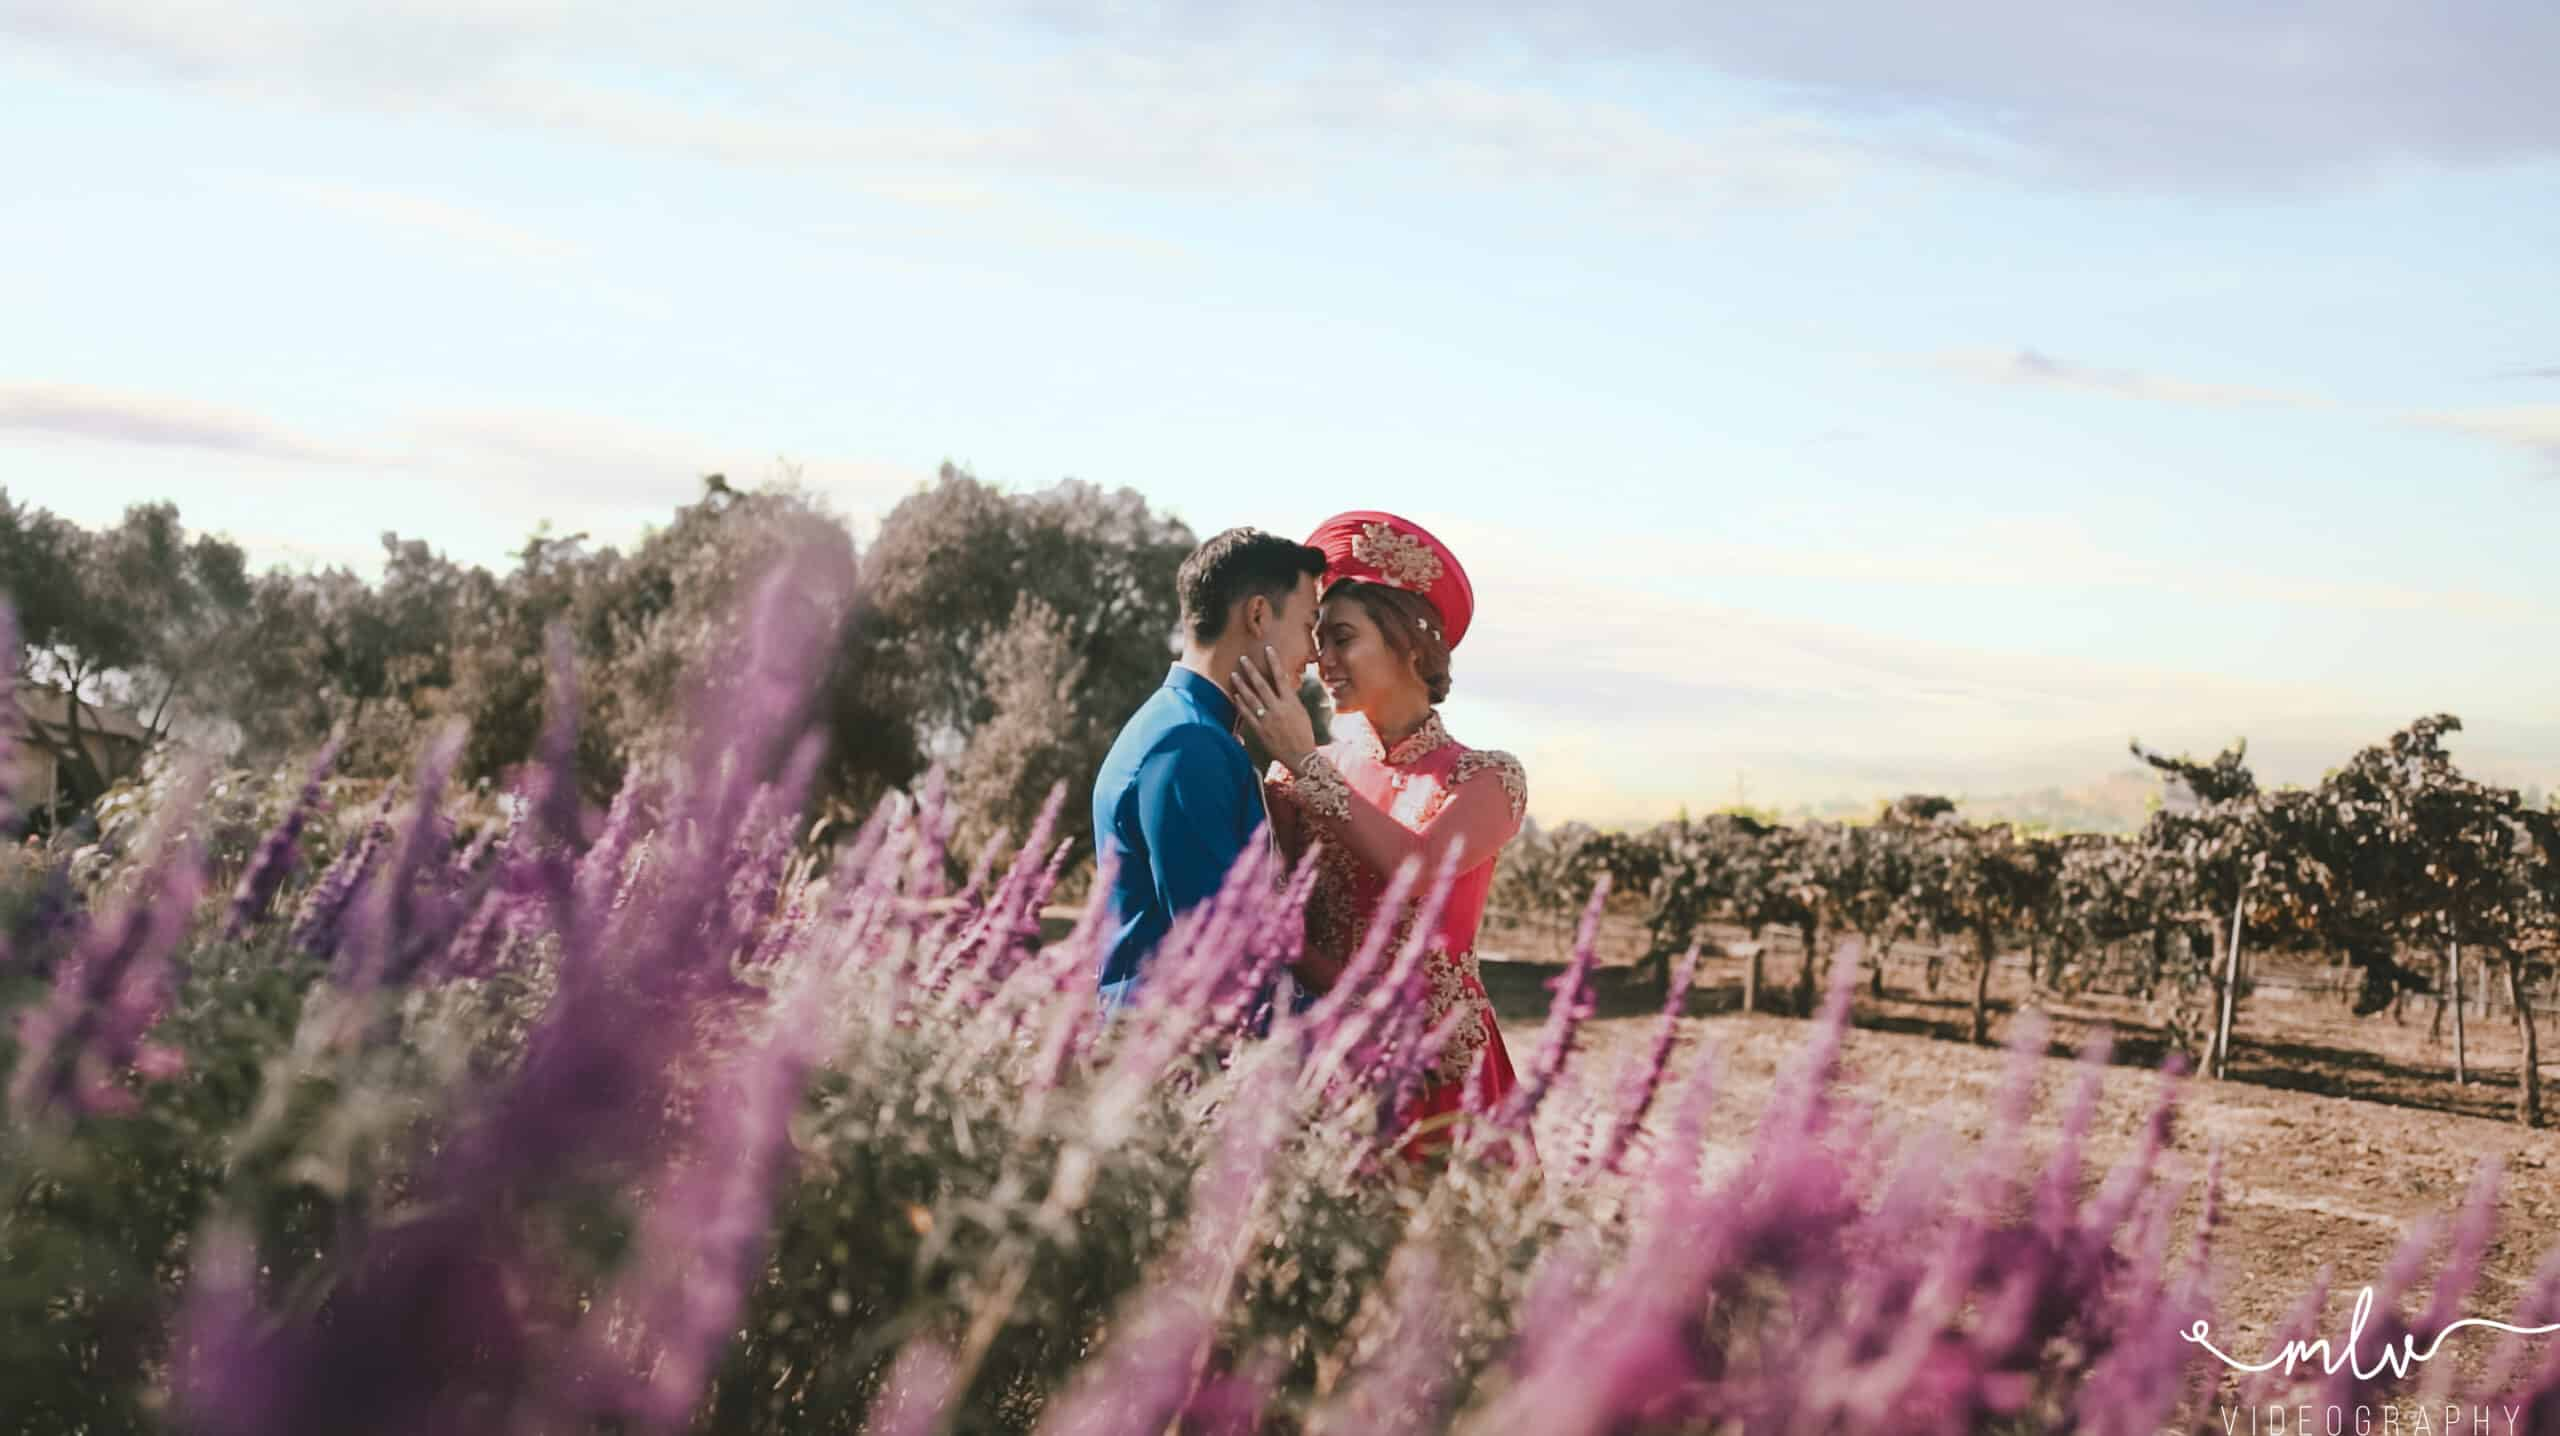 Wedding Léal Vineyards in Hollister California Bay Area Photographer and Videographer